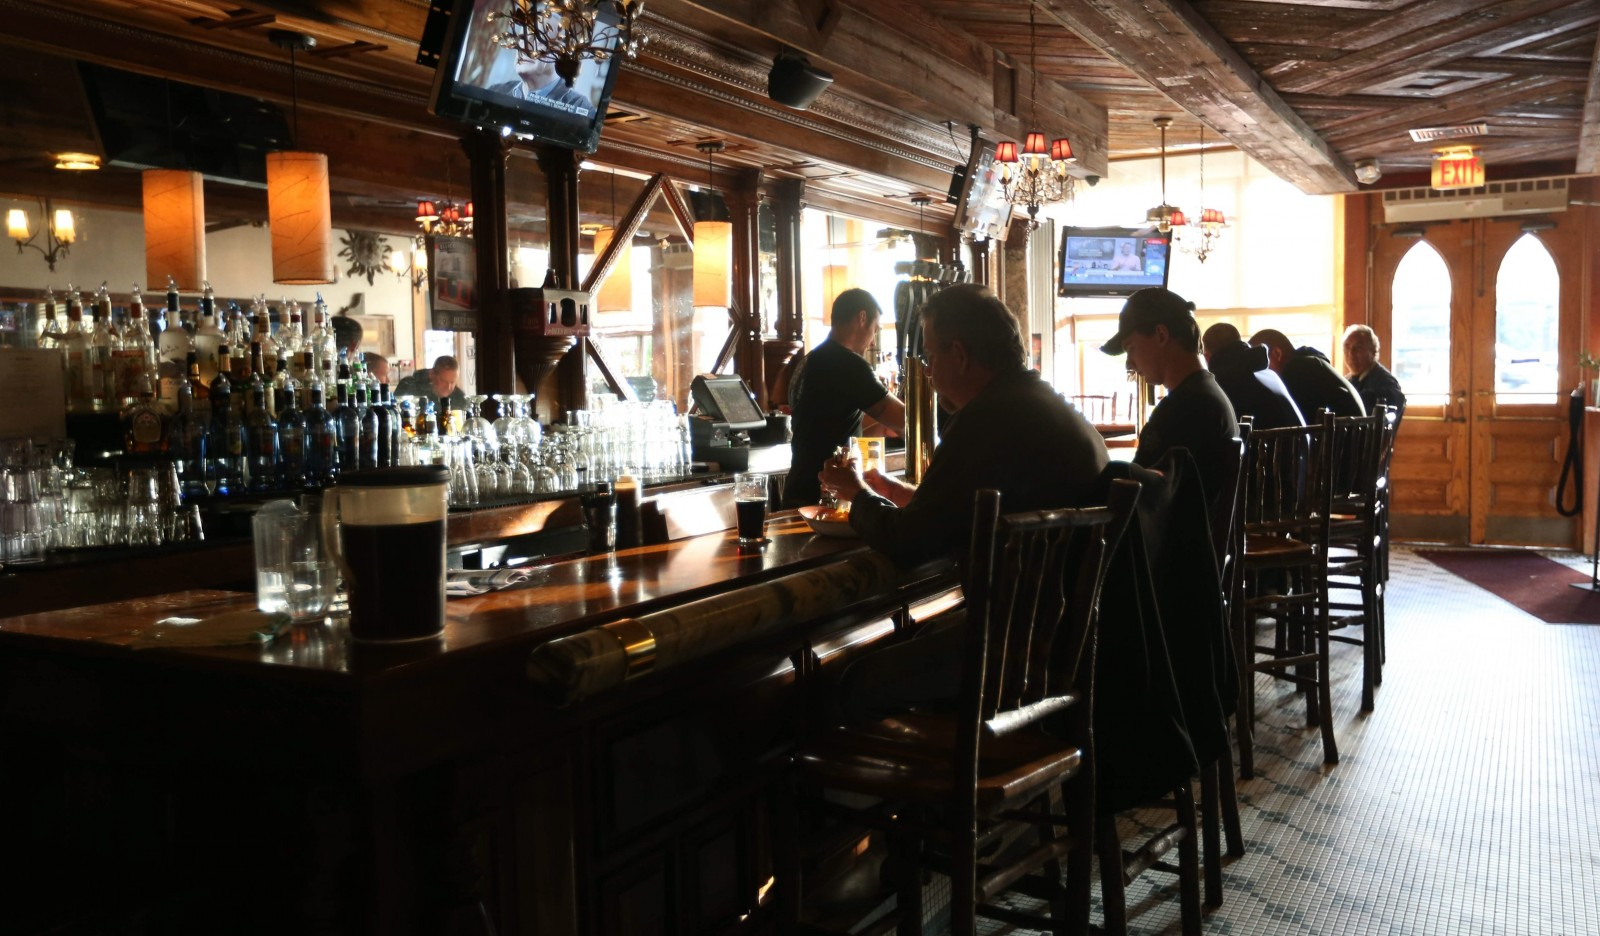 Ellicottville Brewing Company on Monroe Street in Ellicottville has a warm, friendly vibe. Besides its beer, it offers a full bar and plenty of food options. (Sharon Cantillon/Buffalo News file photo)